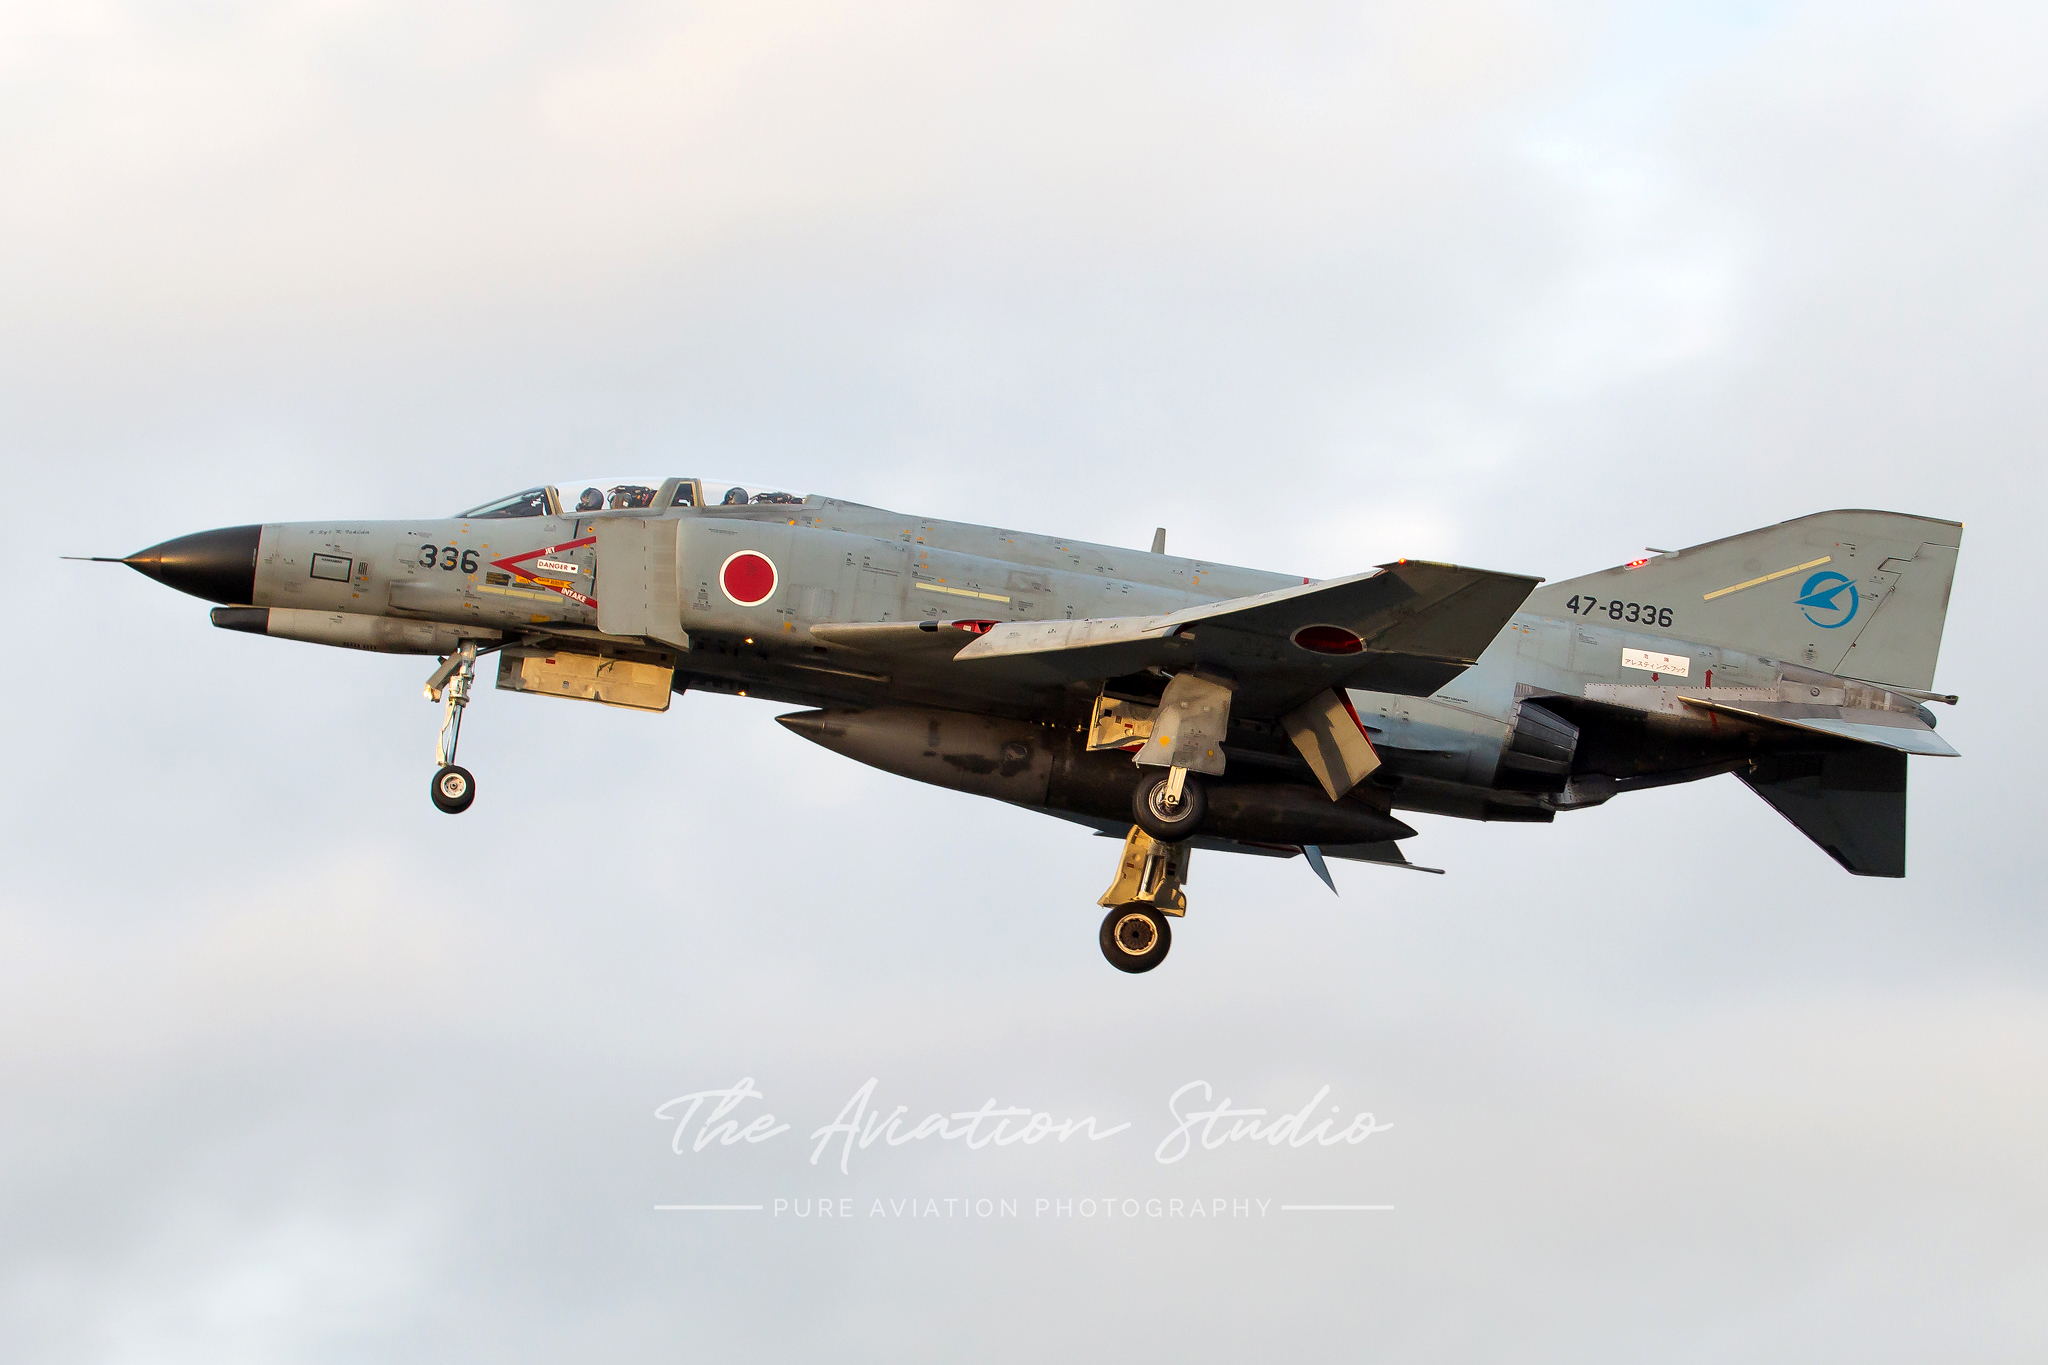 McDonnell Douglas F-4EJ Phantom II 47-8336 on arrival into Gifu (Image: Brock Little)